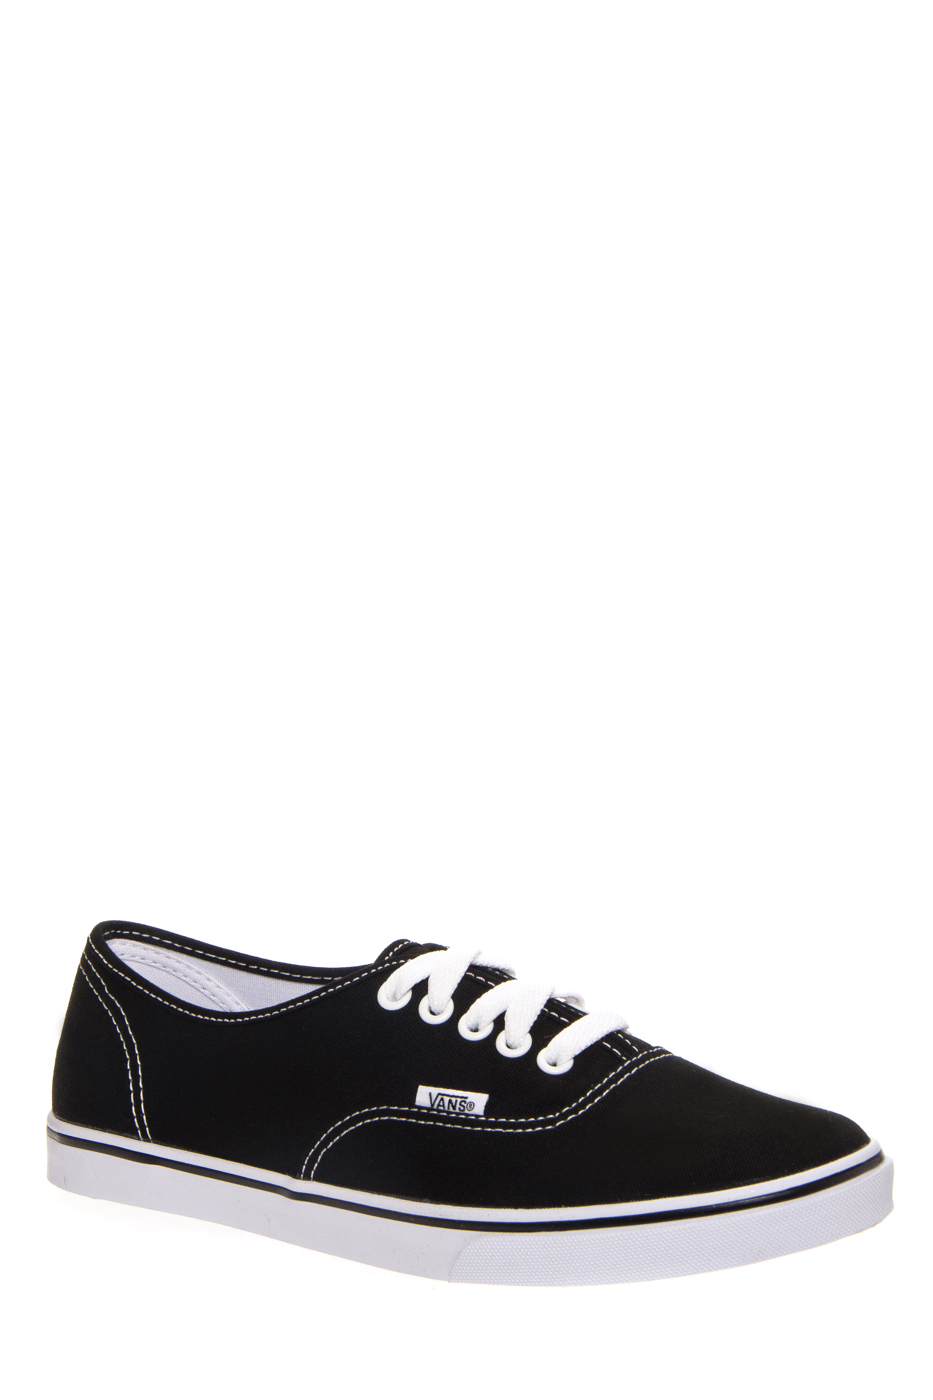 VANS Unisex Authentic Lo Pro Sneakers - Black / True Whiter